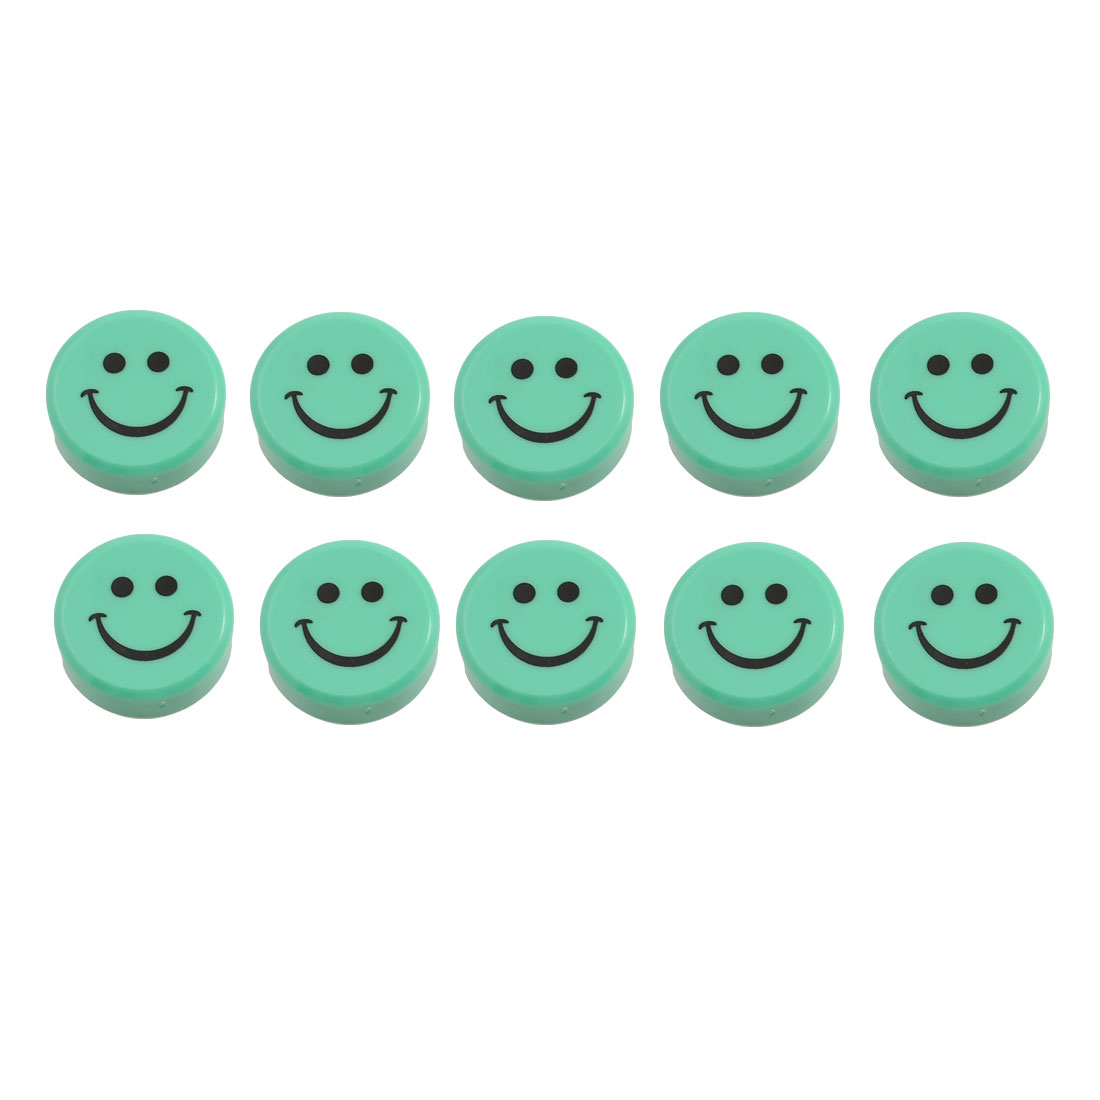 10pcs Green Plastic Smile Face Fridge Washing Machine Magnets Stickers